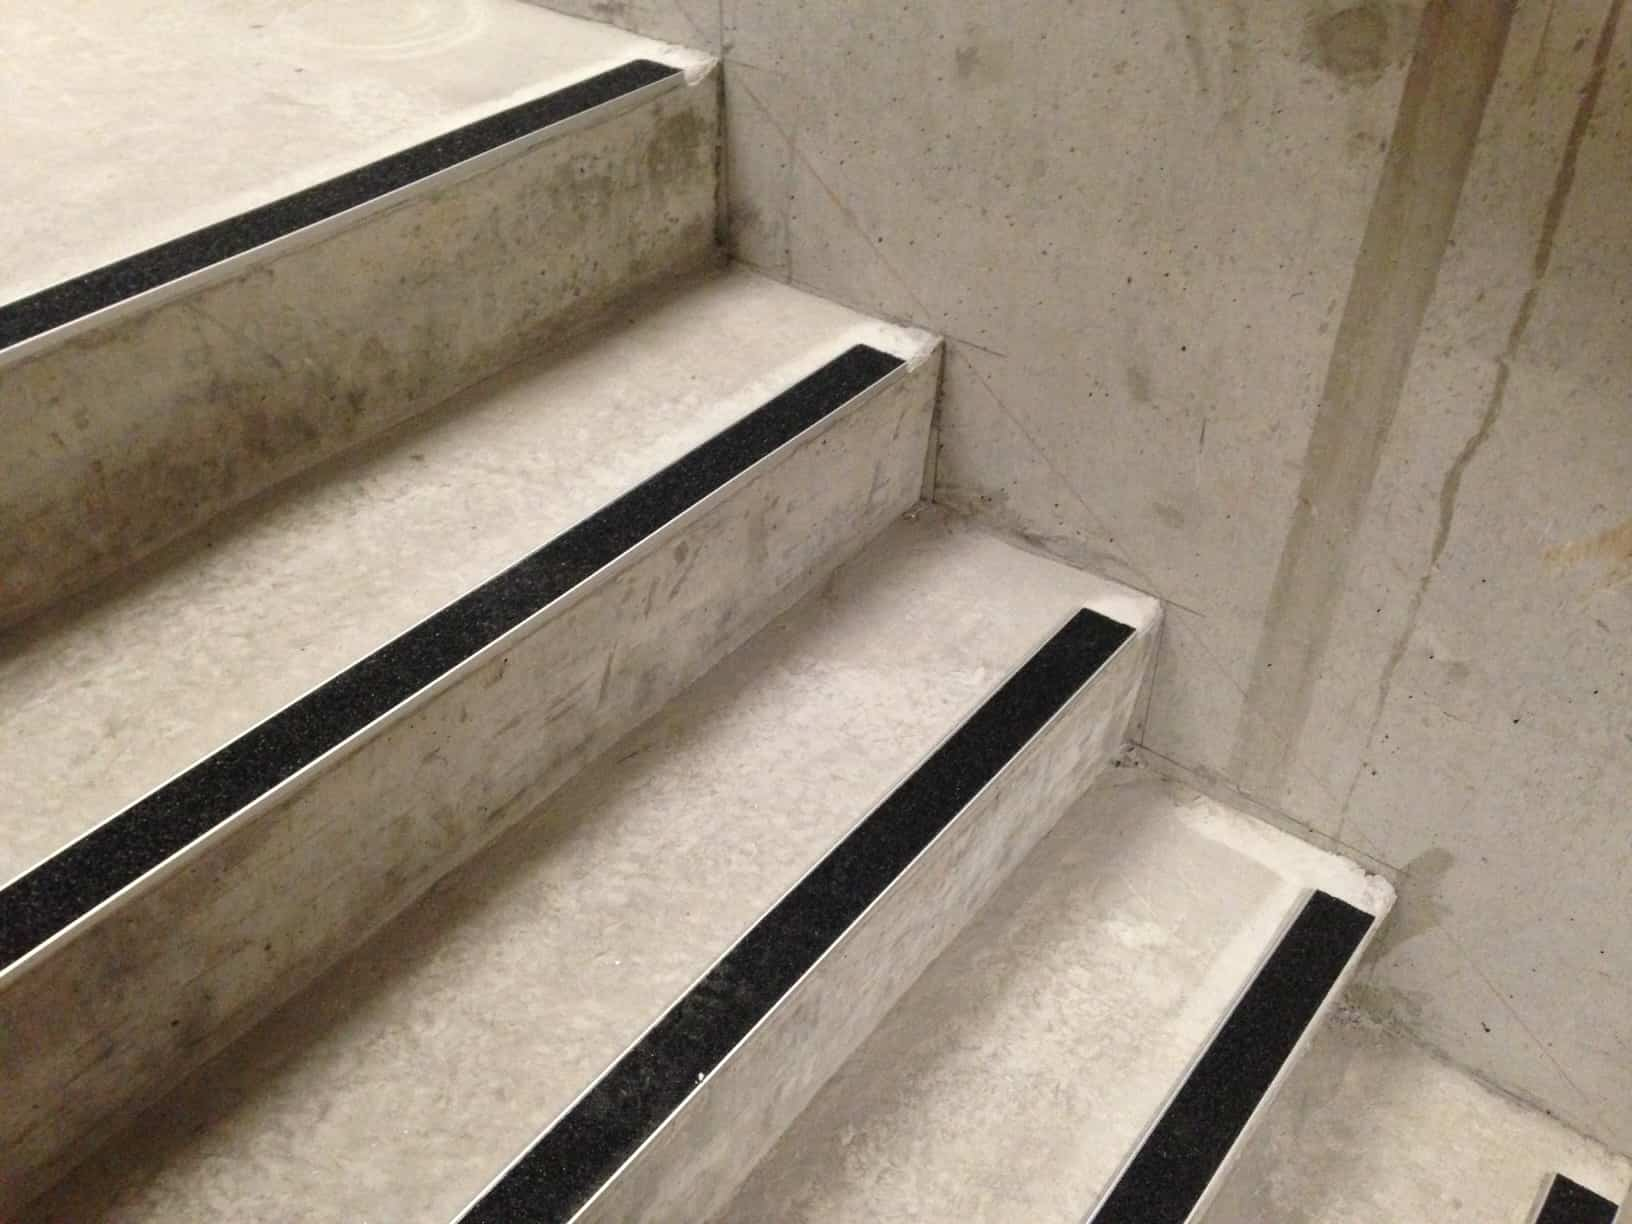 10 Mm Stair Nosing Installed On Concrete